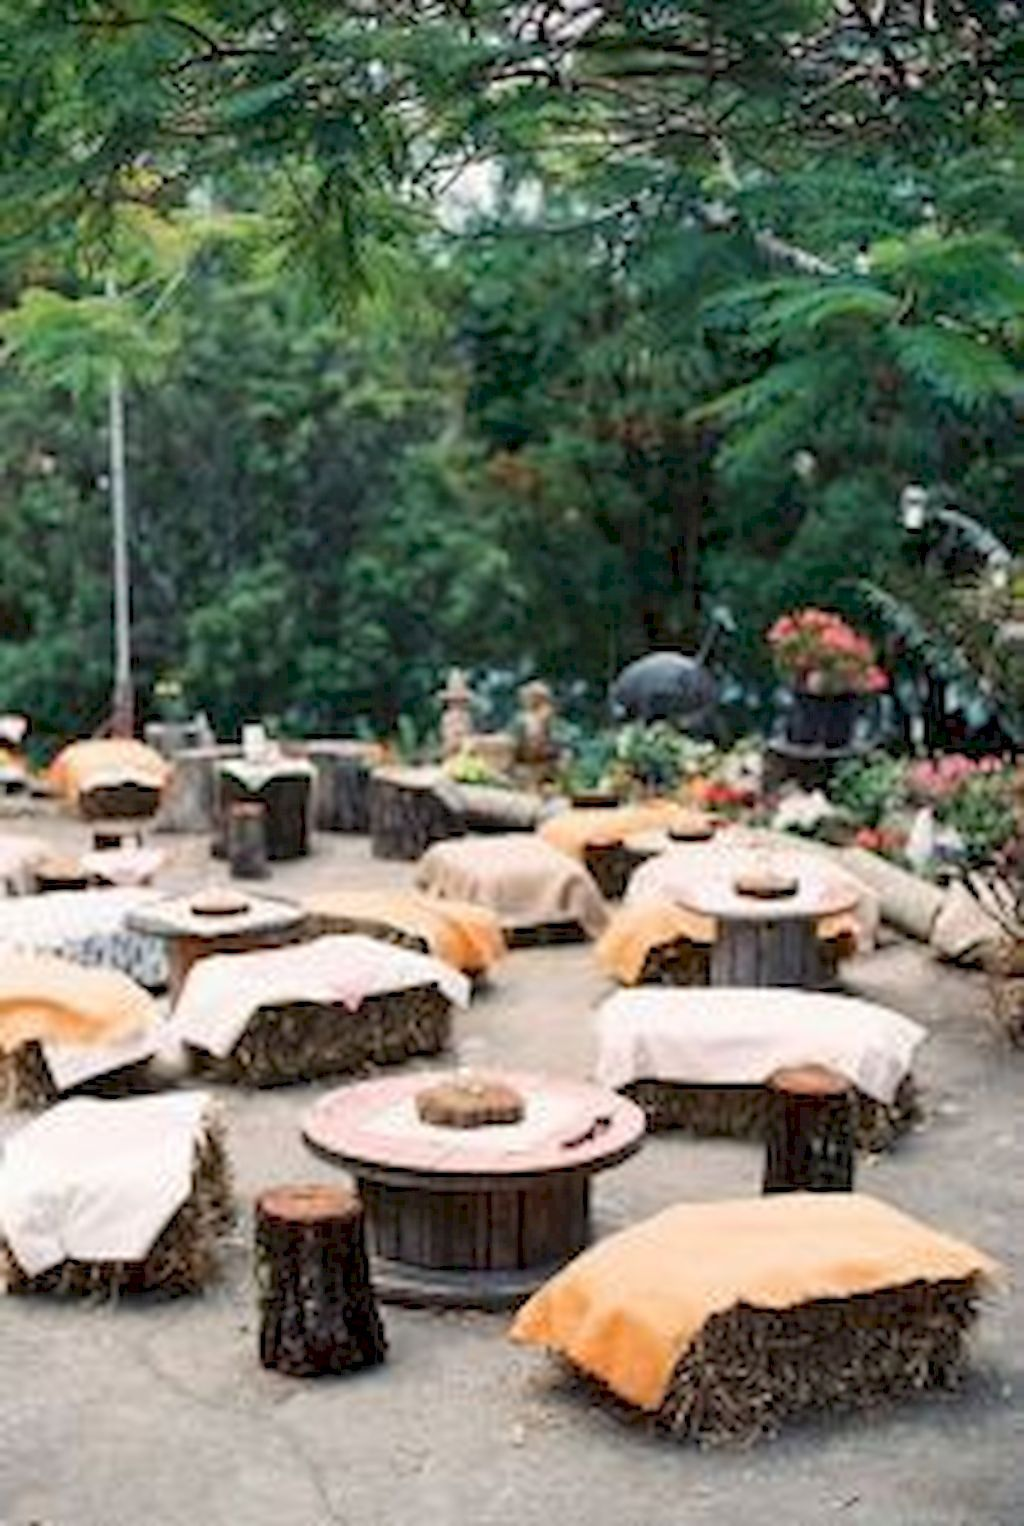 Outdoor fall wedding decor  How to Decorate a Wedding Outdoor Decor Ideas on a Budget Outdoor